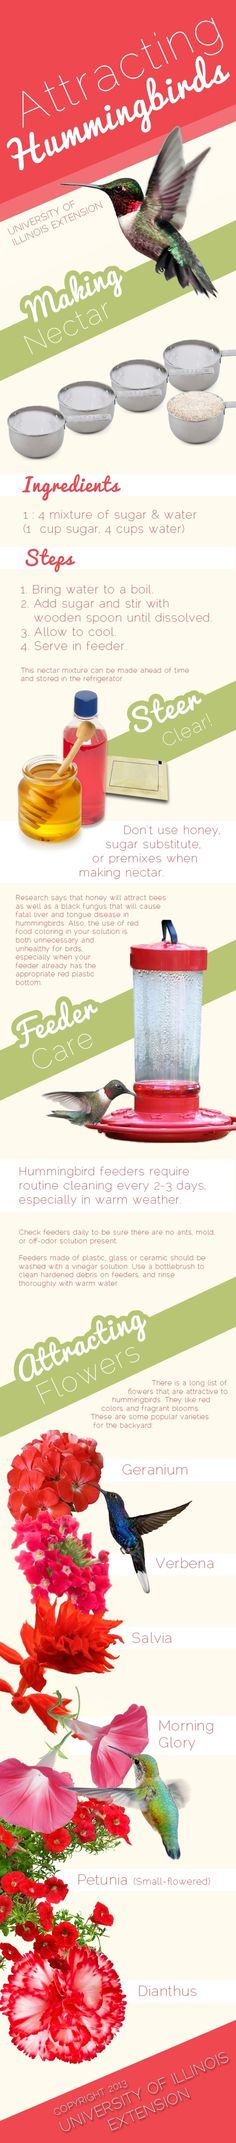 Tratamiento Disfuncion Erectil - Terrace Garden - Learn some simple ways to attract hummingbirds to your garden. by cora This time, we will know how to decorate your balcony and your garden easily with plants Sistema Libertad Disfuncion Erectil Horticulture, How To Attract Hummingbirds, Attracting Hummingbirds, Hummingbird Garden, Hummingbird Nectar, Hummingbird Flowers, Hummingbird Mixture, Hummingbird Food Diy, Hummingbird Feeder Recipe